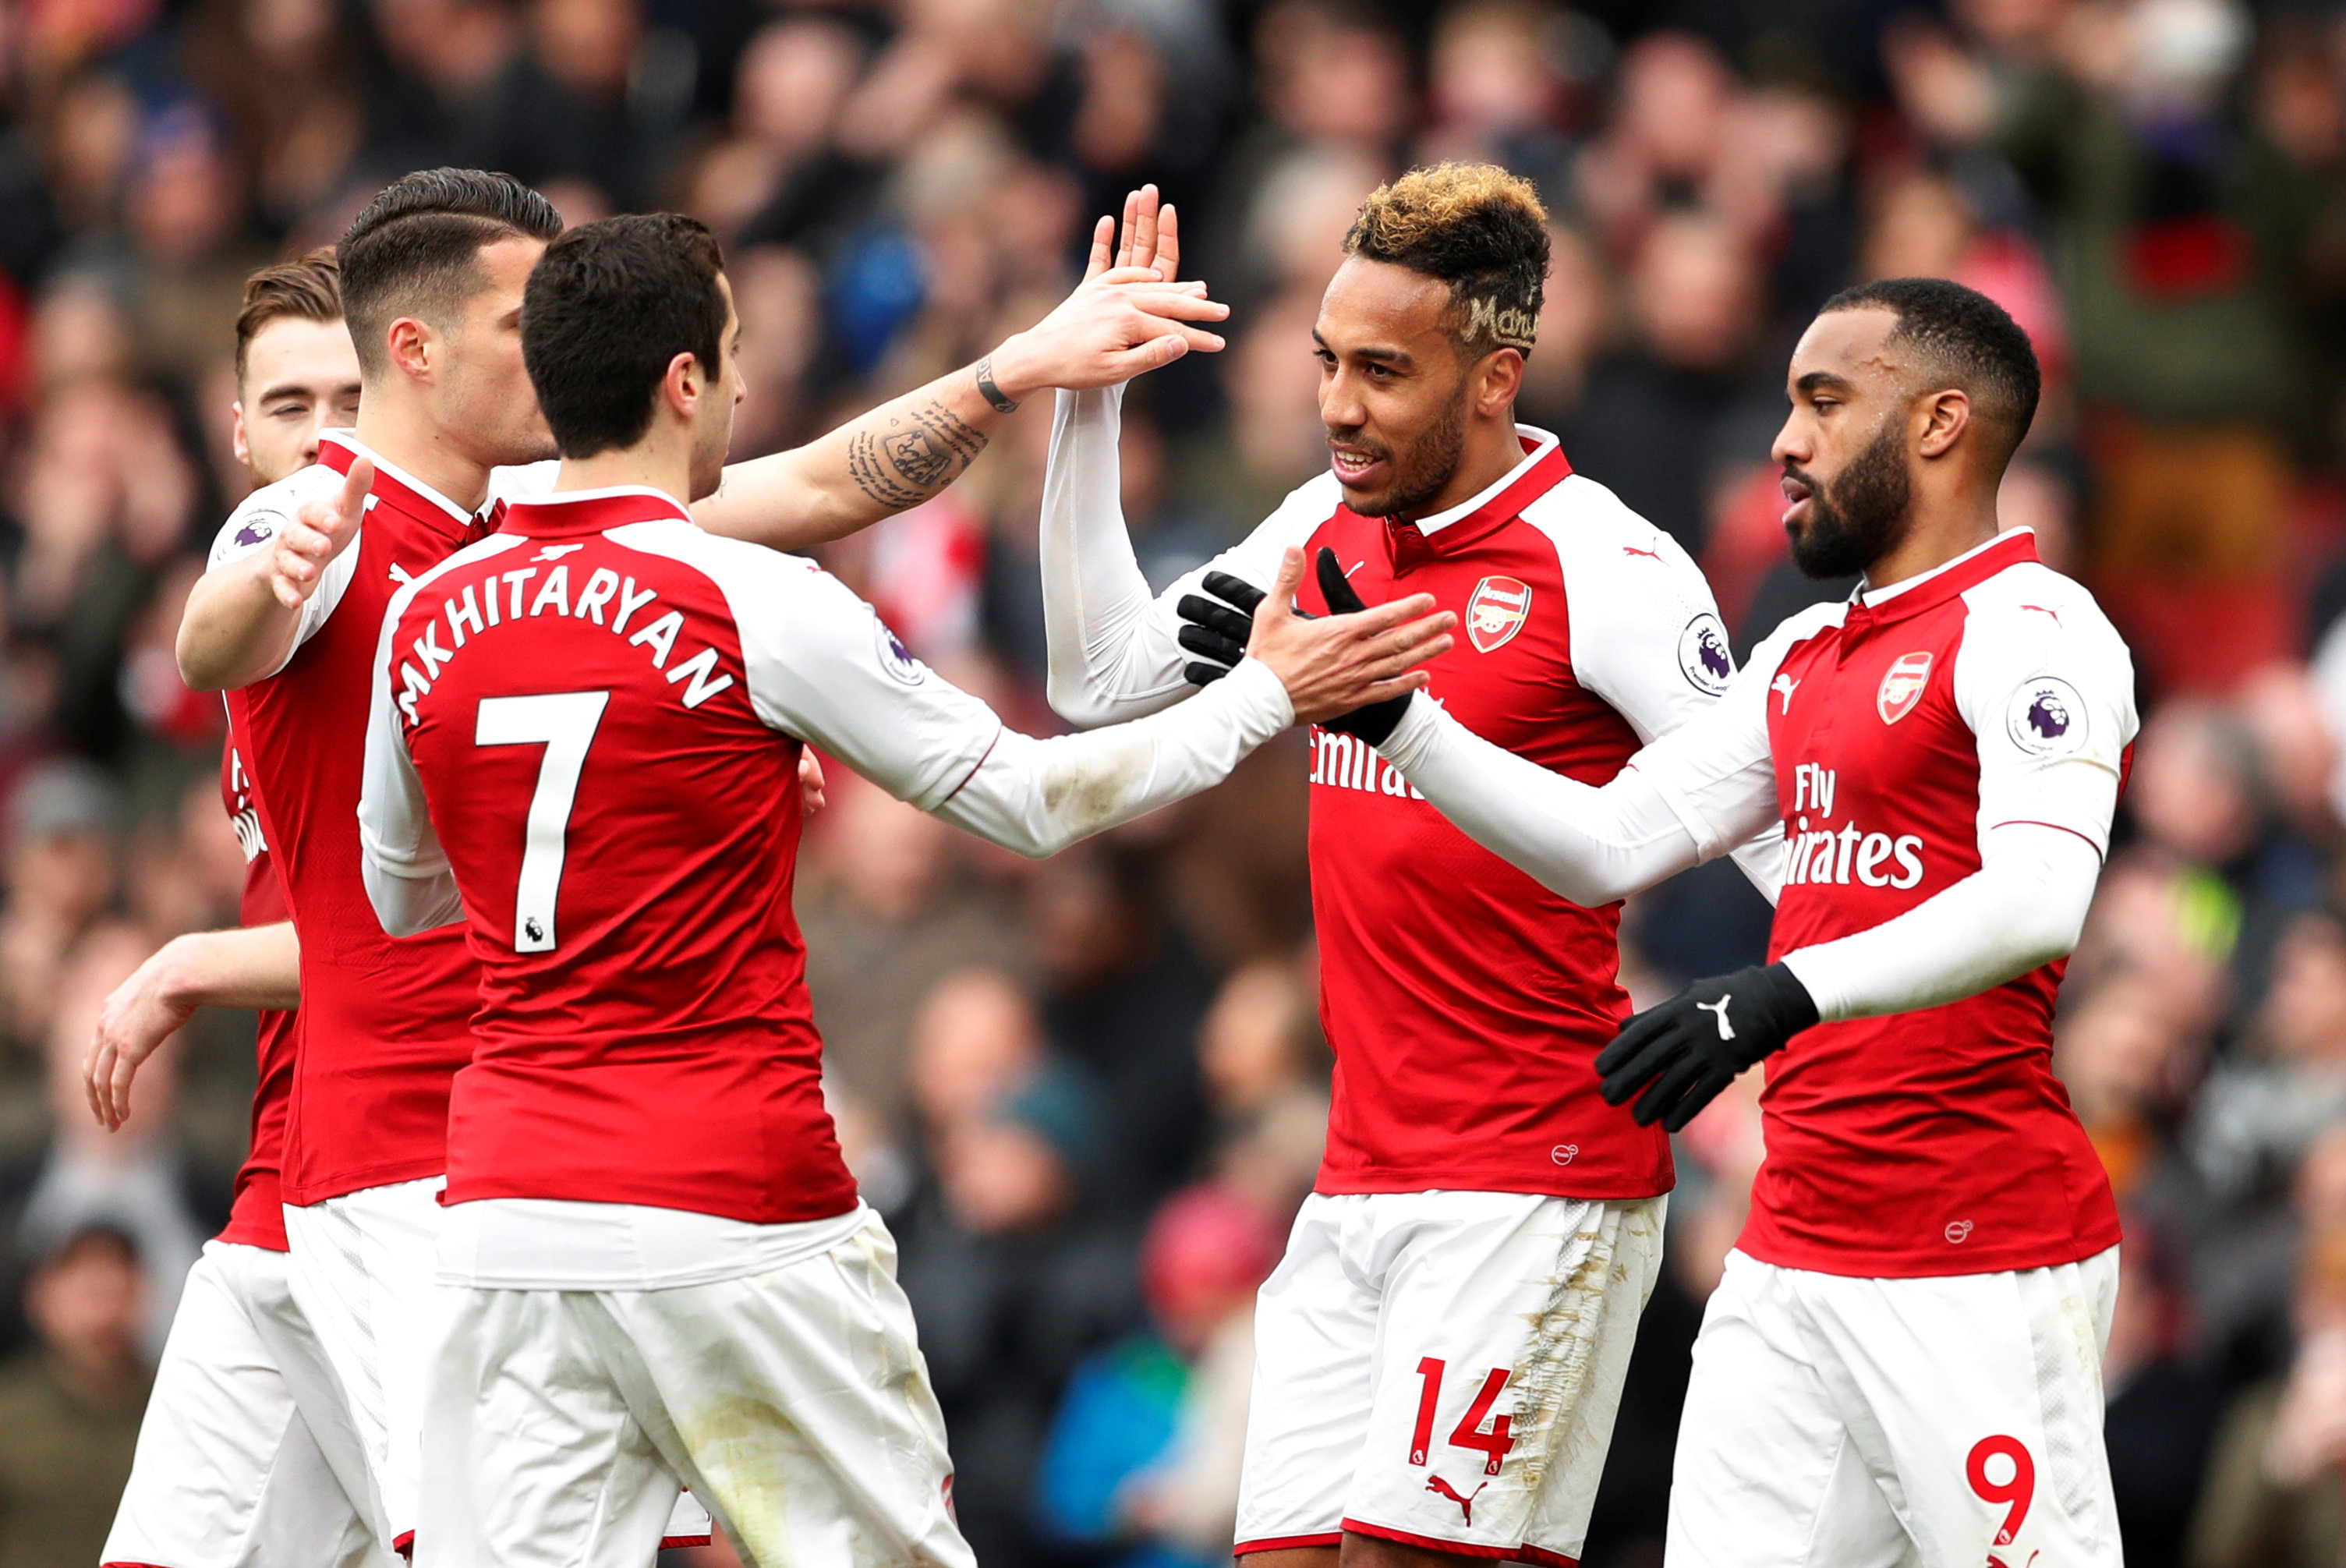 Football: Arsenal's late goals leave Stoke stuck in drop zone